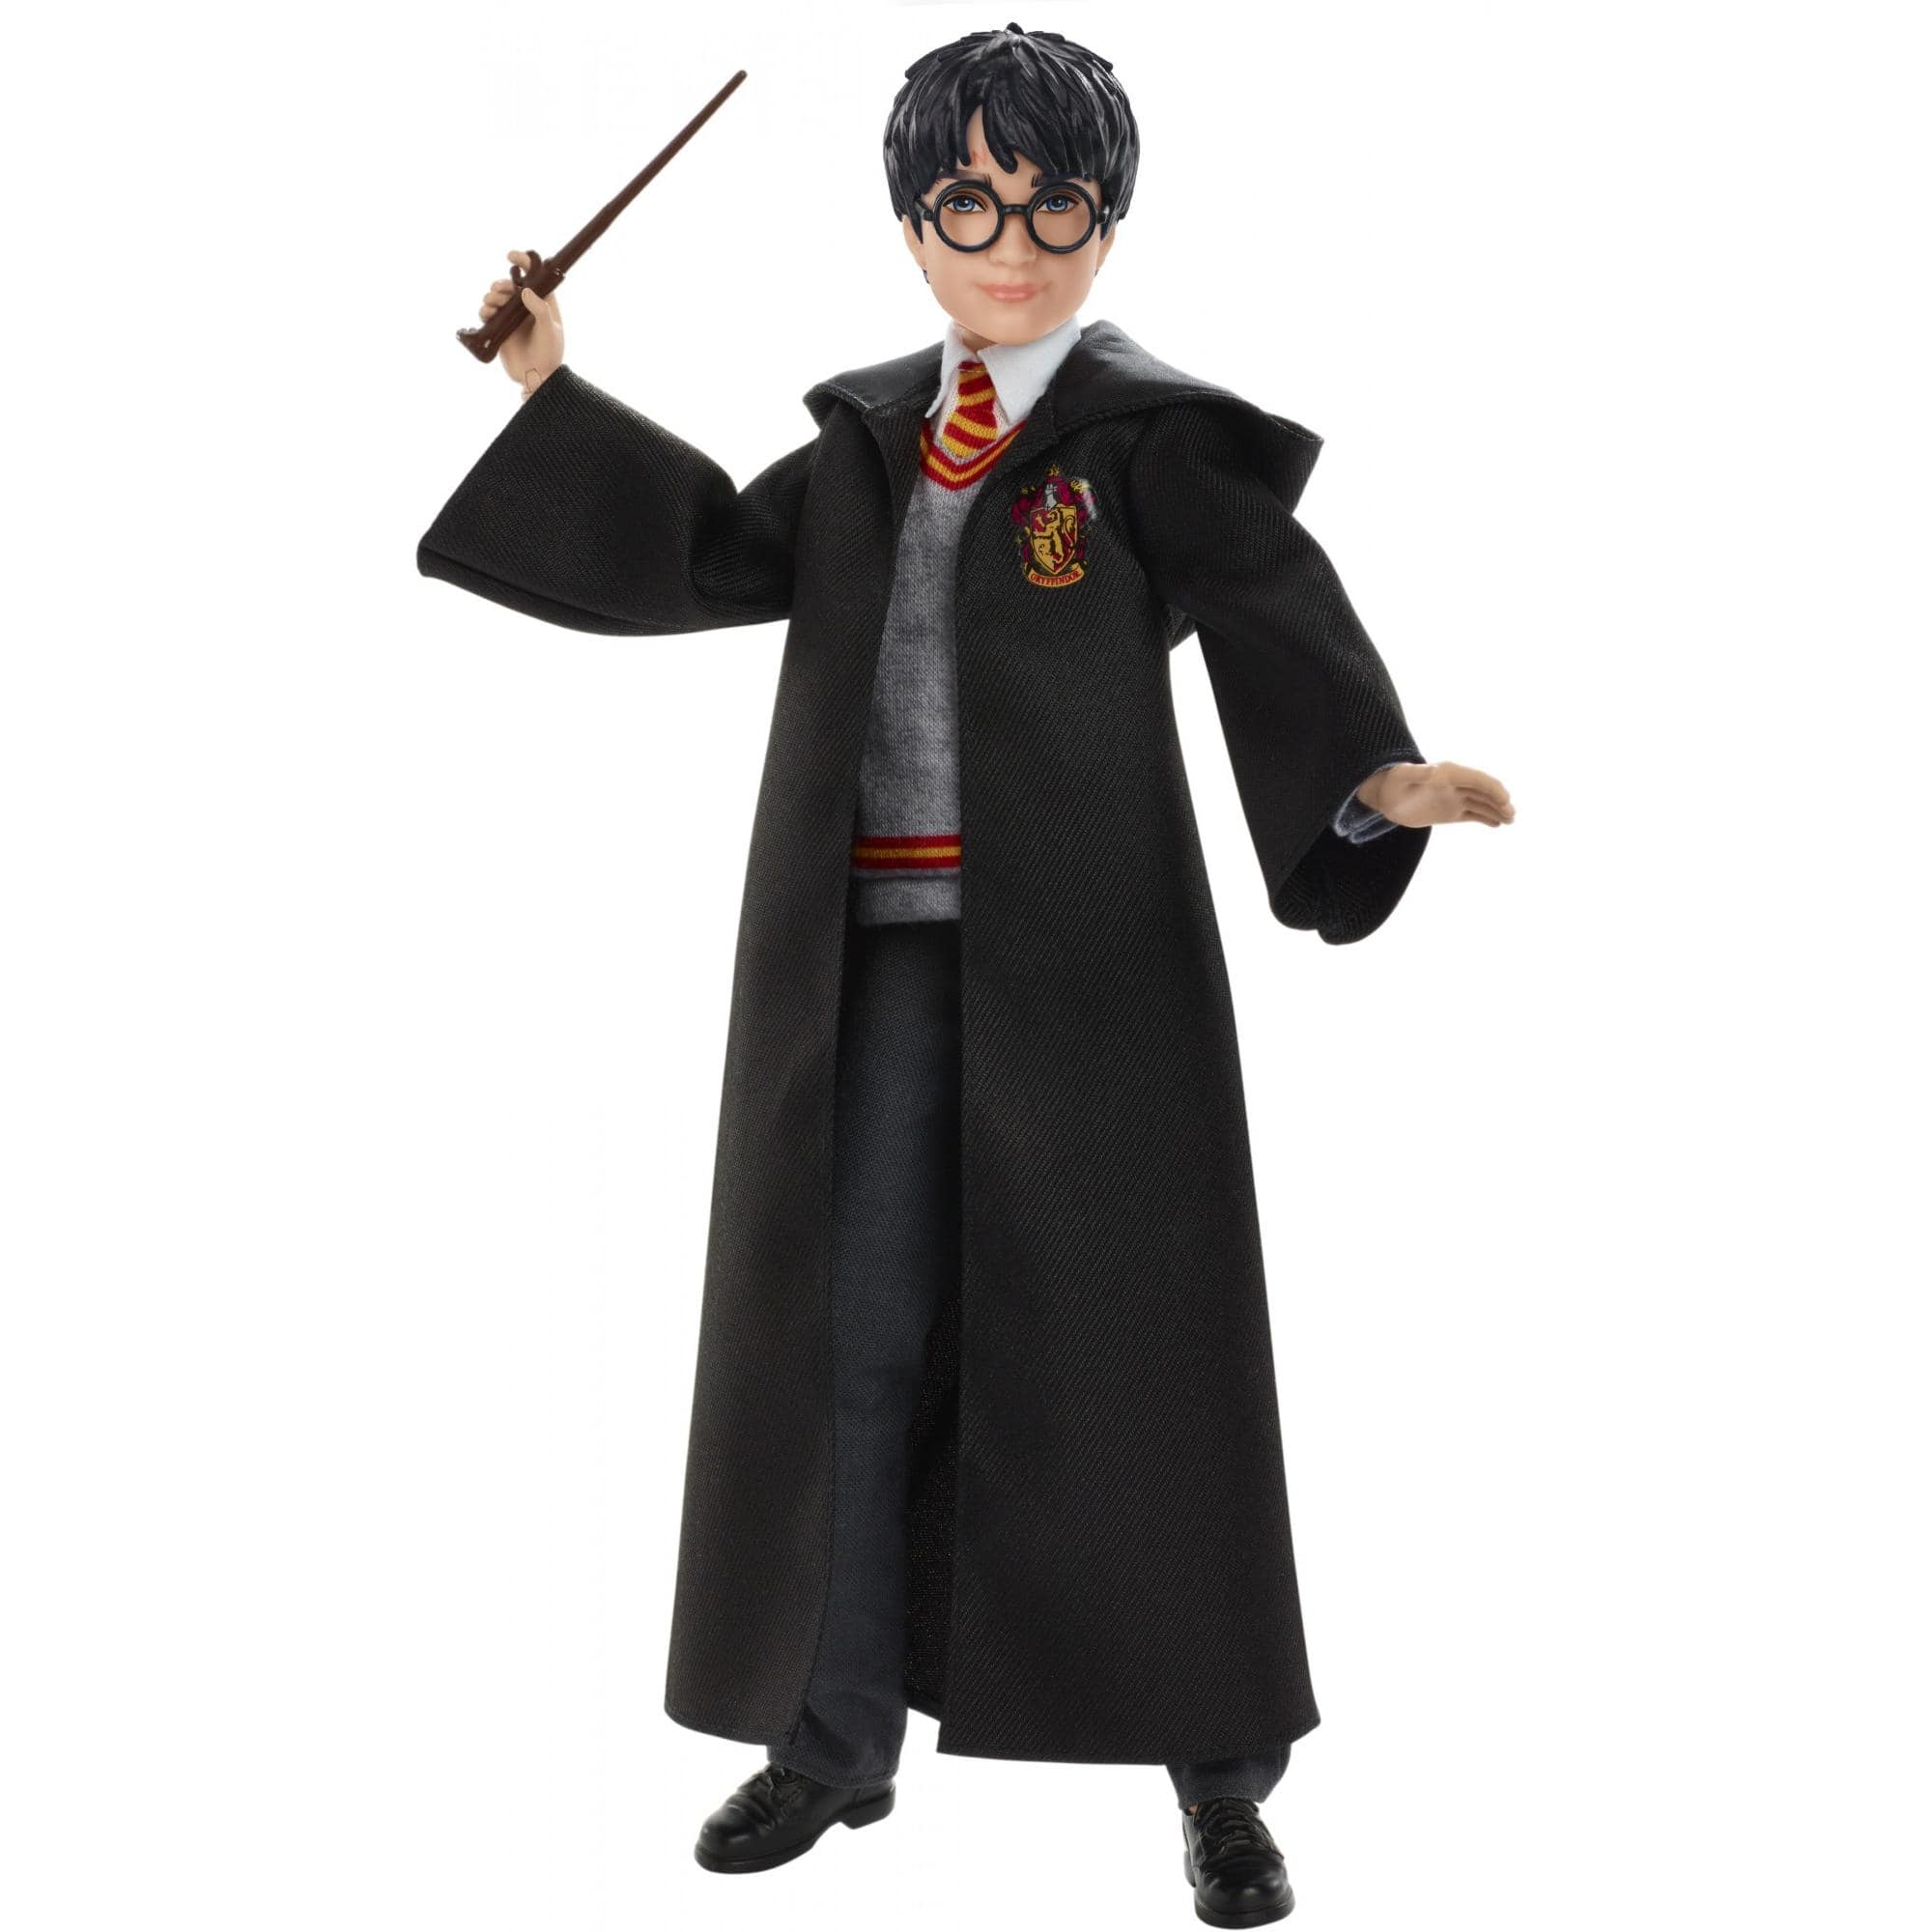 Harry Potter Collector Dolls $4-5 each and more toys (legos, barbies, nerf, and etc) ymmv Walmart